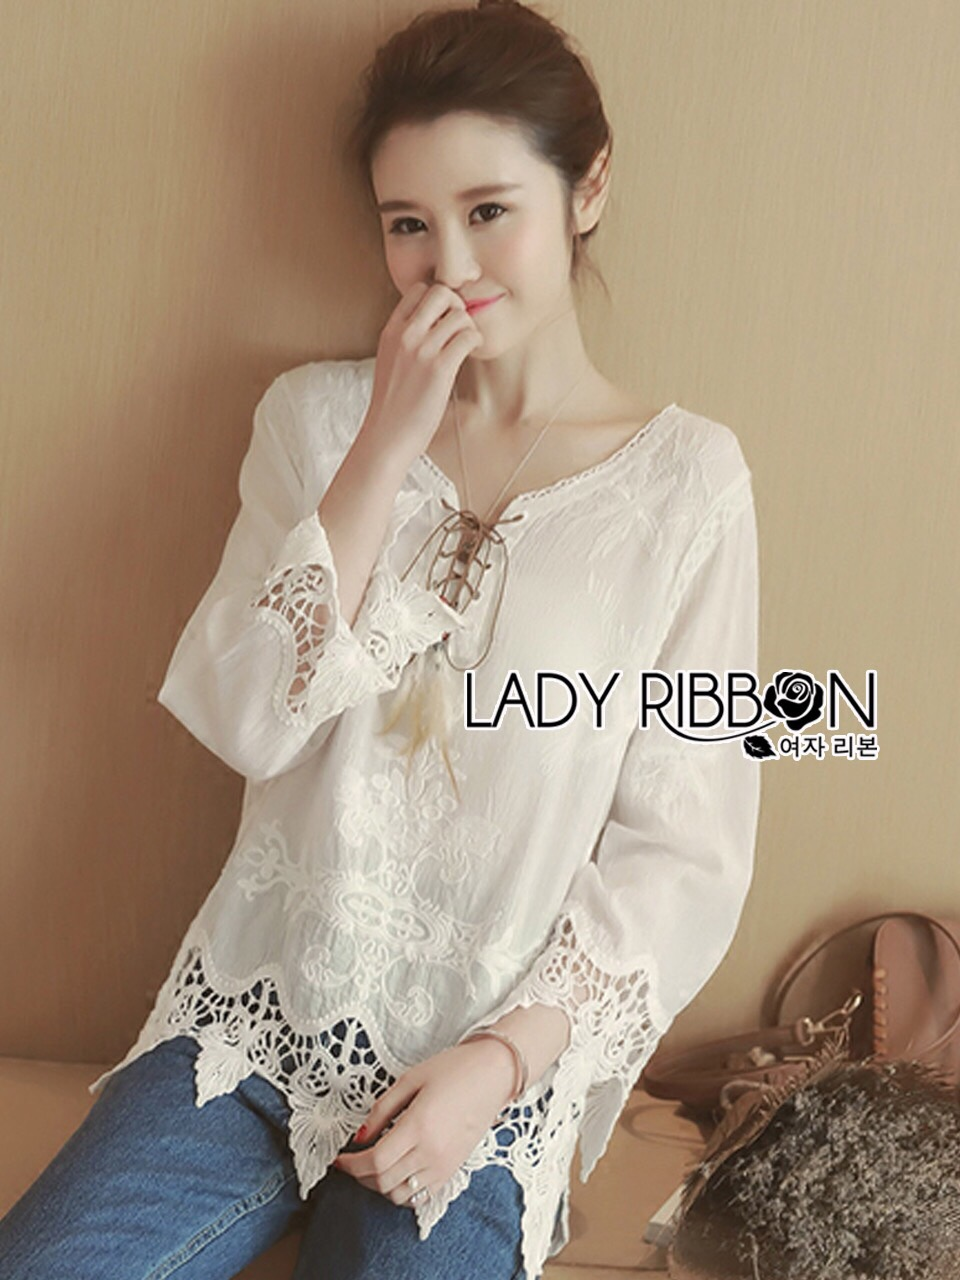 Lady Ribbon Korea Dress LR01230616 &#x1F380 Lady Ribbon's Made &#x1F380 Lady Sara Bohemien Chic Cotton Embroidered with Lace Top เ